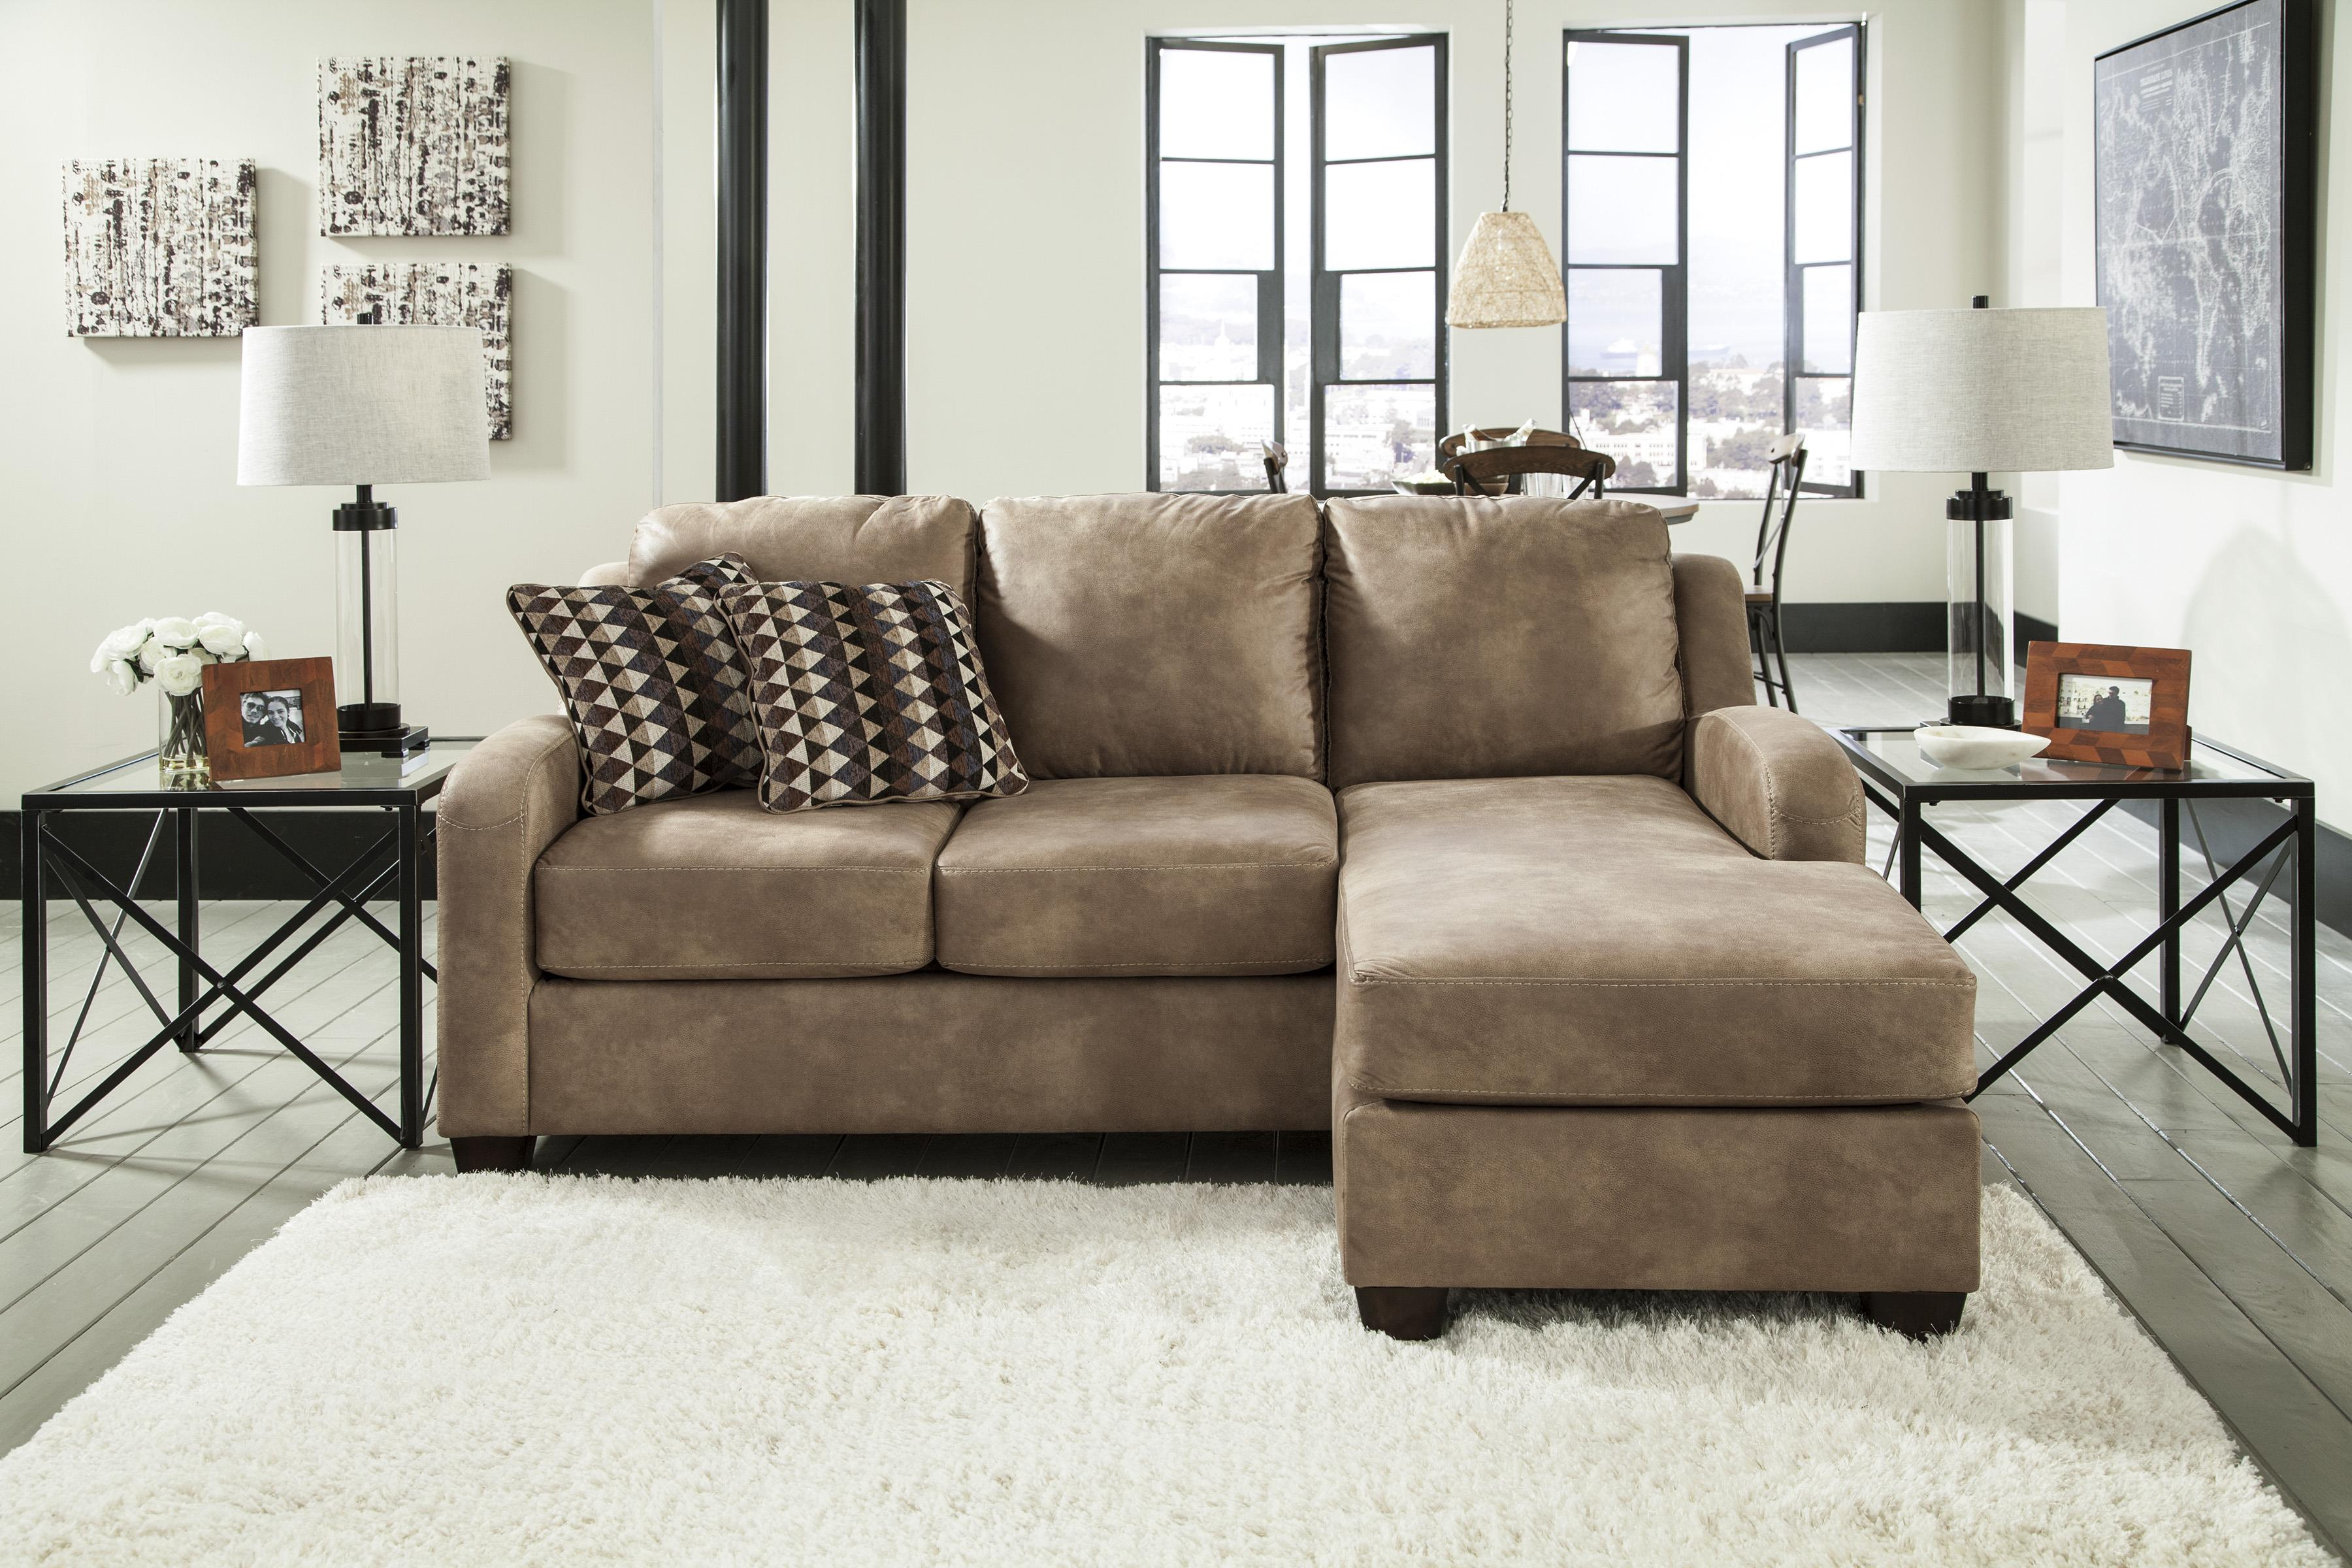 contemporary faux leather sofa chaise by benchcraft wolf furniture rh wolffurniture com benchcraft leather chair benchcraft leather chair